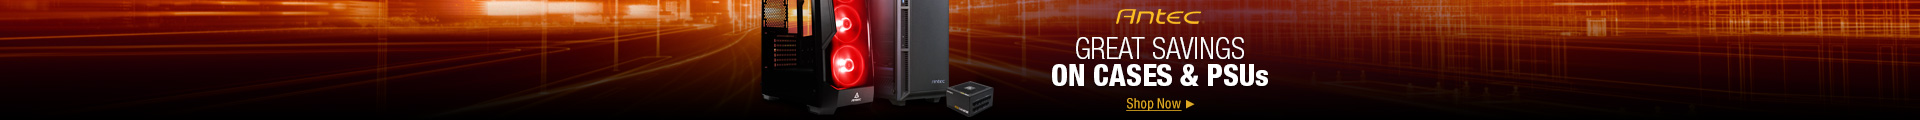 Antec GREATE SAVINGS ON CASES & PSUs